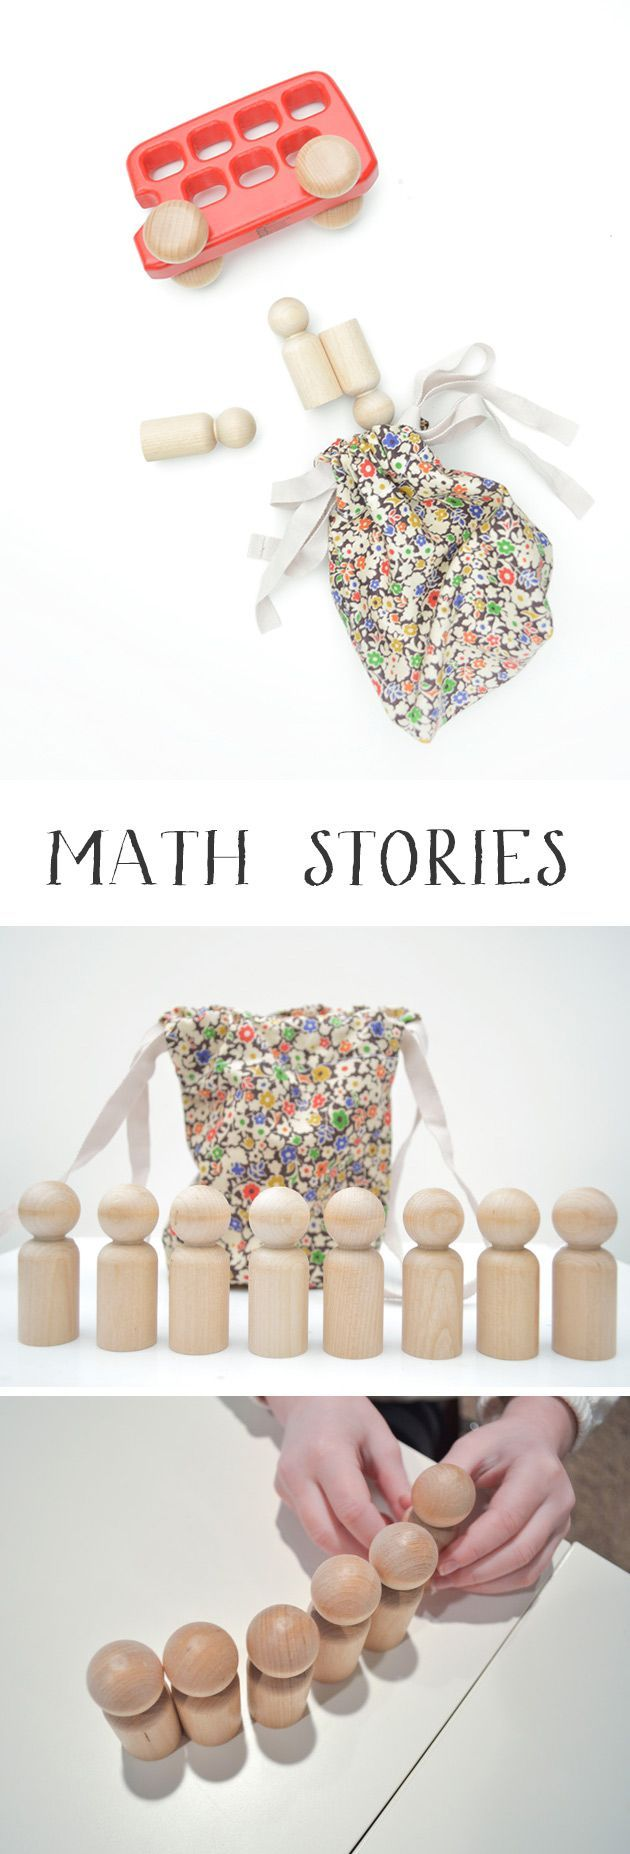 Math stories are a playful way to explore mathematical concepts with your kids. Like a spoken word problem! Kids love counting and answering questions, and this activity helps with their listening skills too.